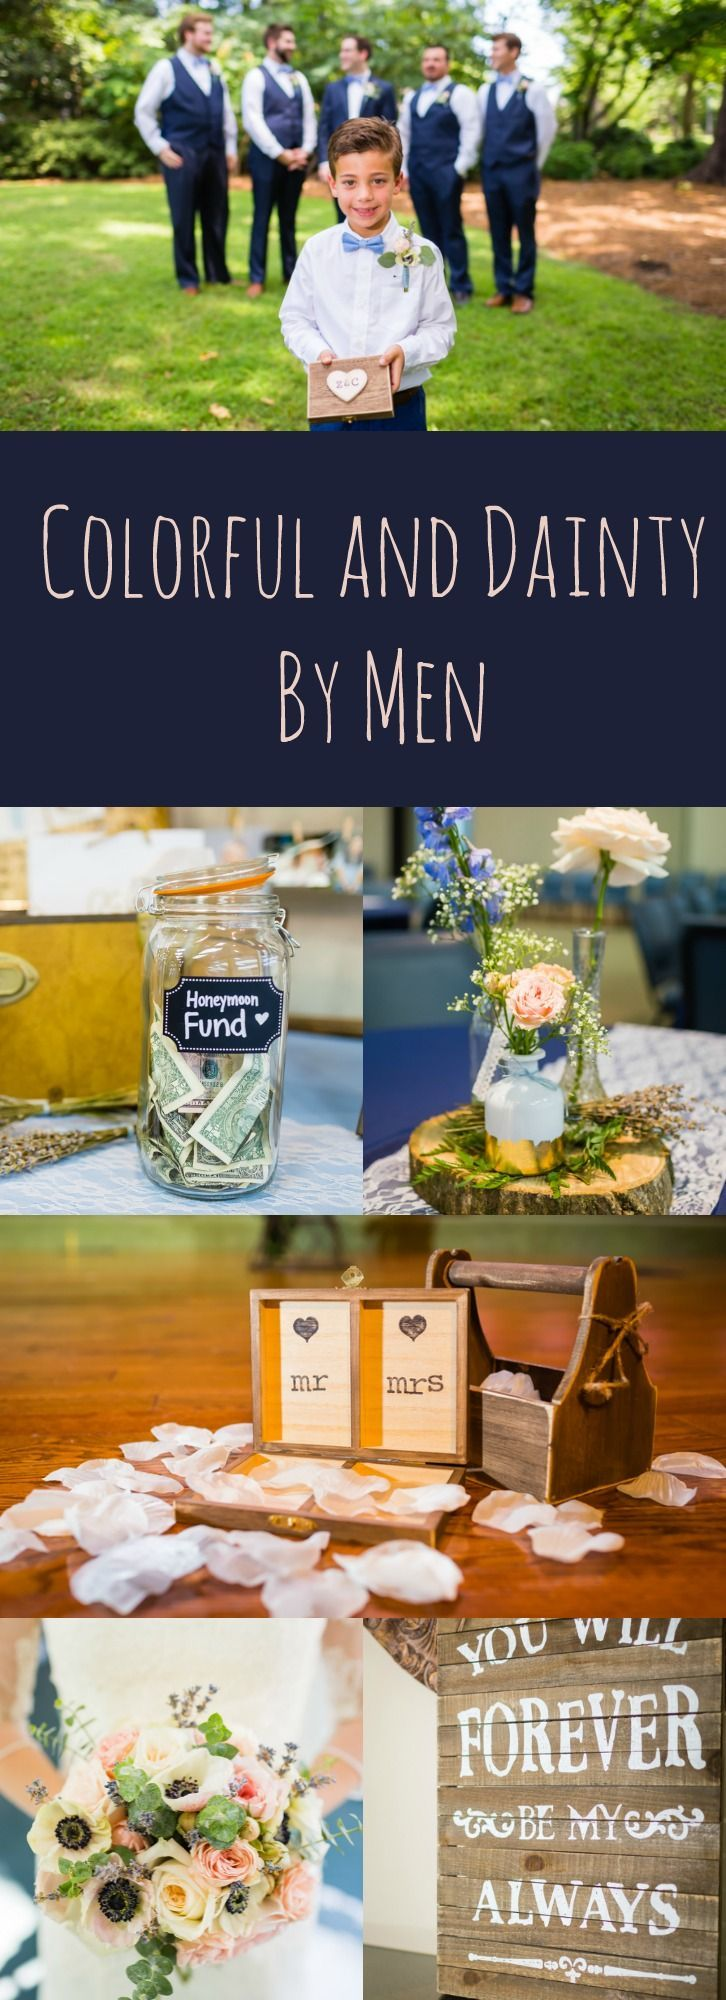 Colorful And Dainty By Men Wedding SongsSummer